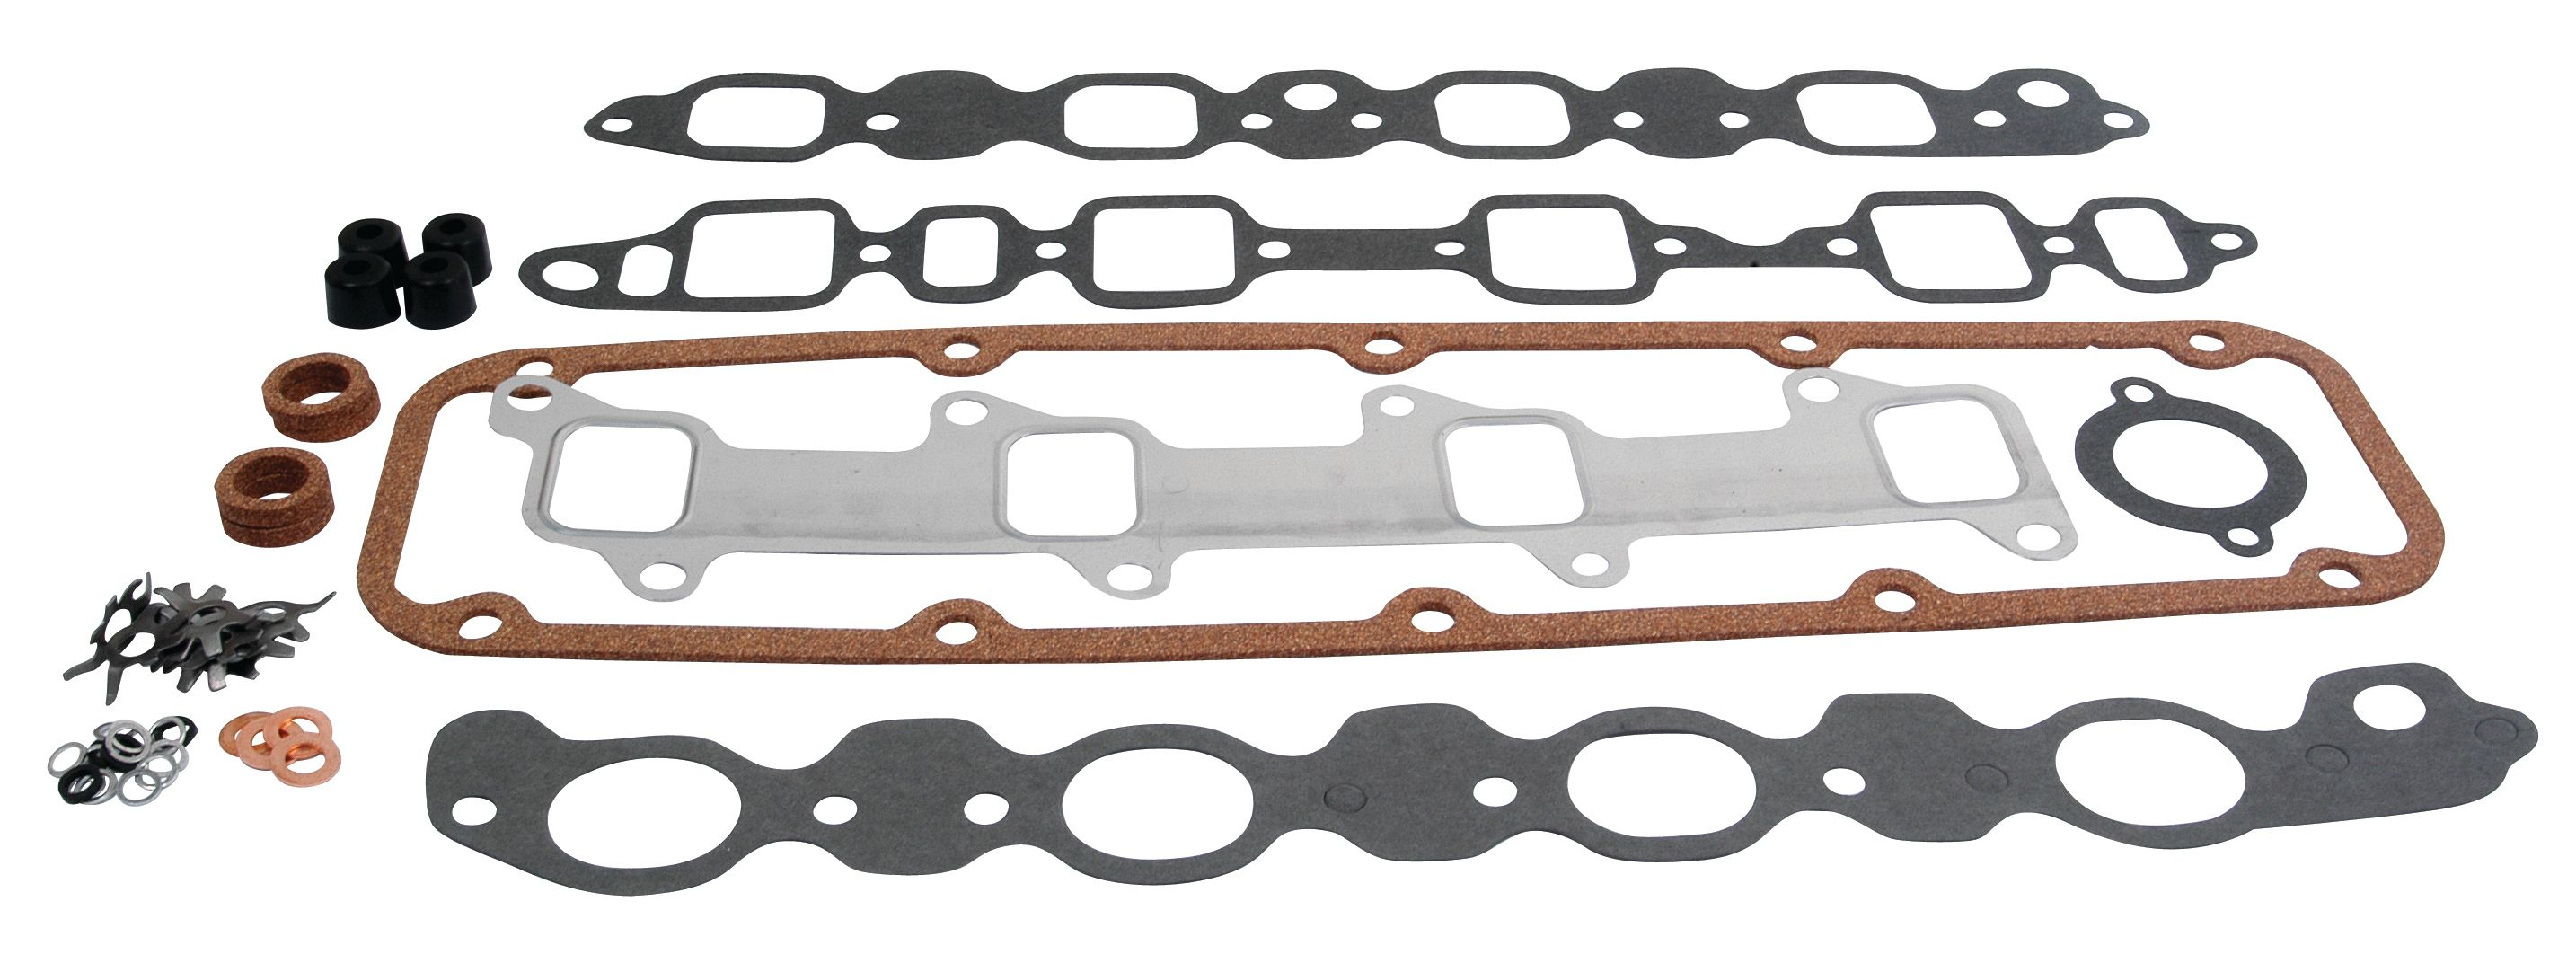 FORD NEW HOLLAND GASKET SET-HEAD SERVICE